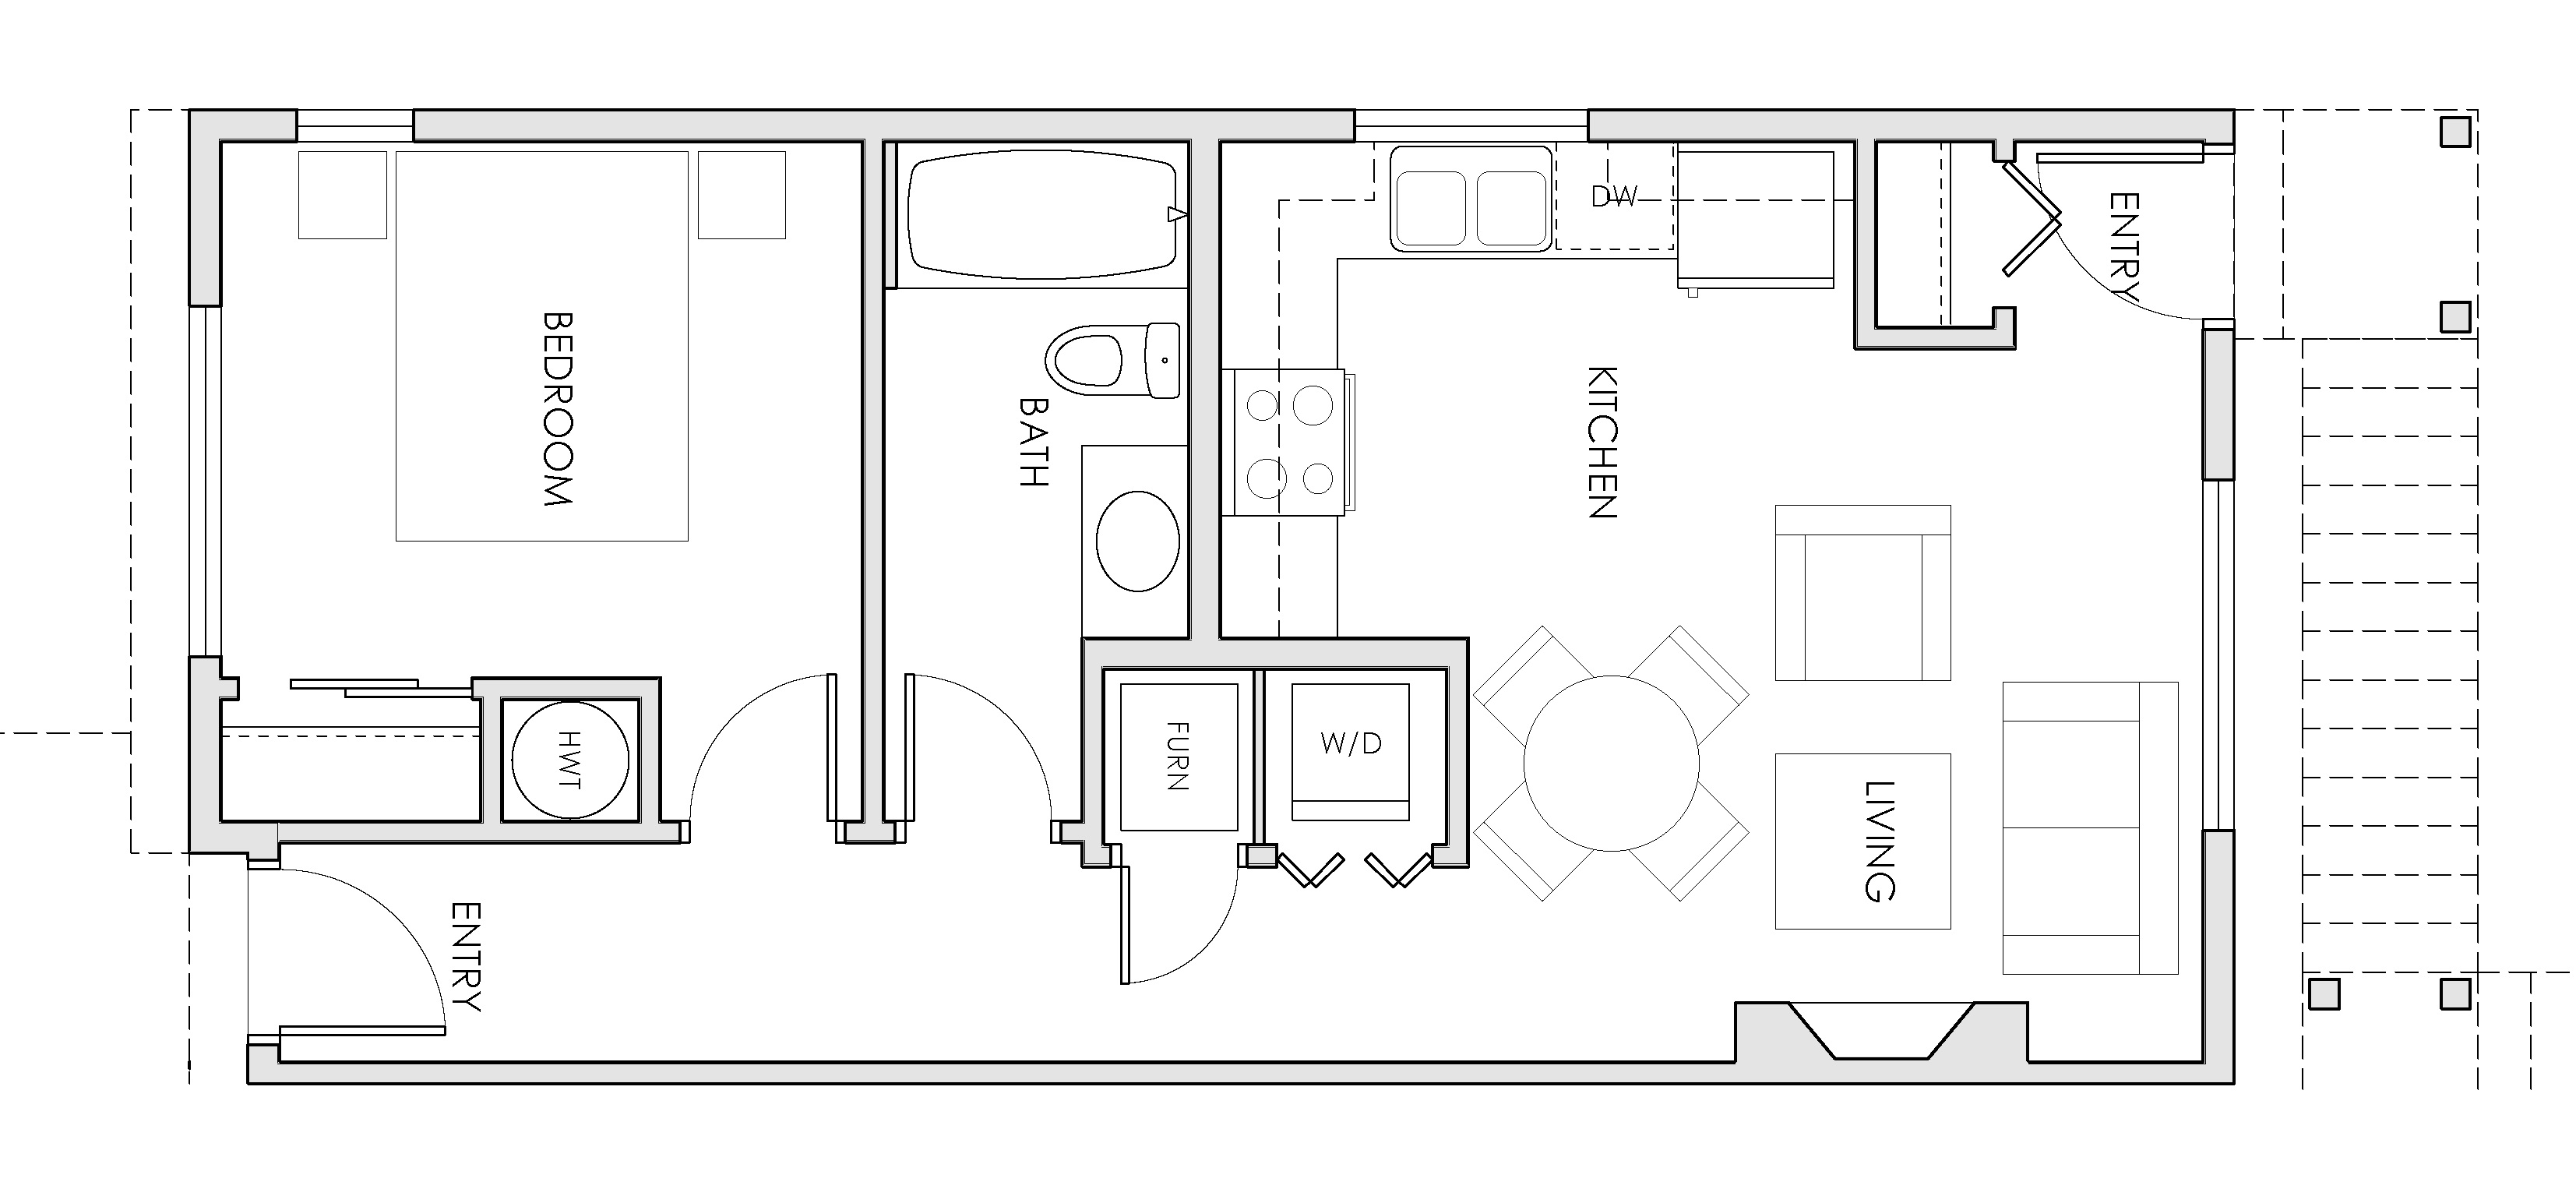 floorplans 1 bedroom